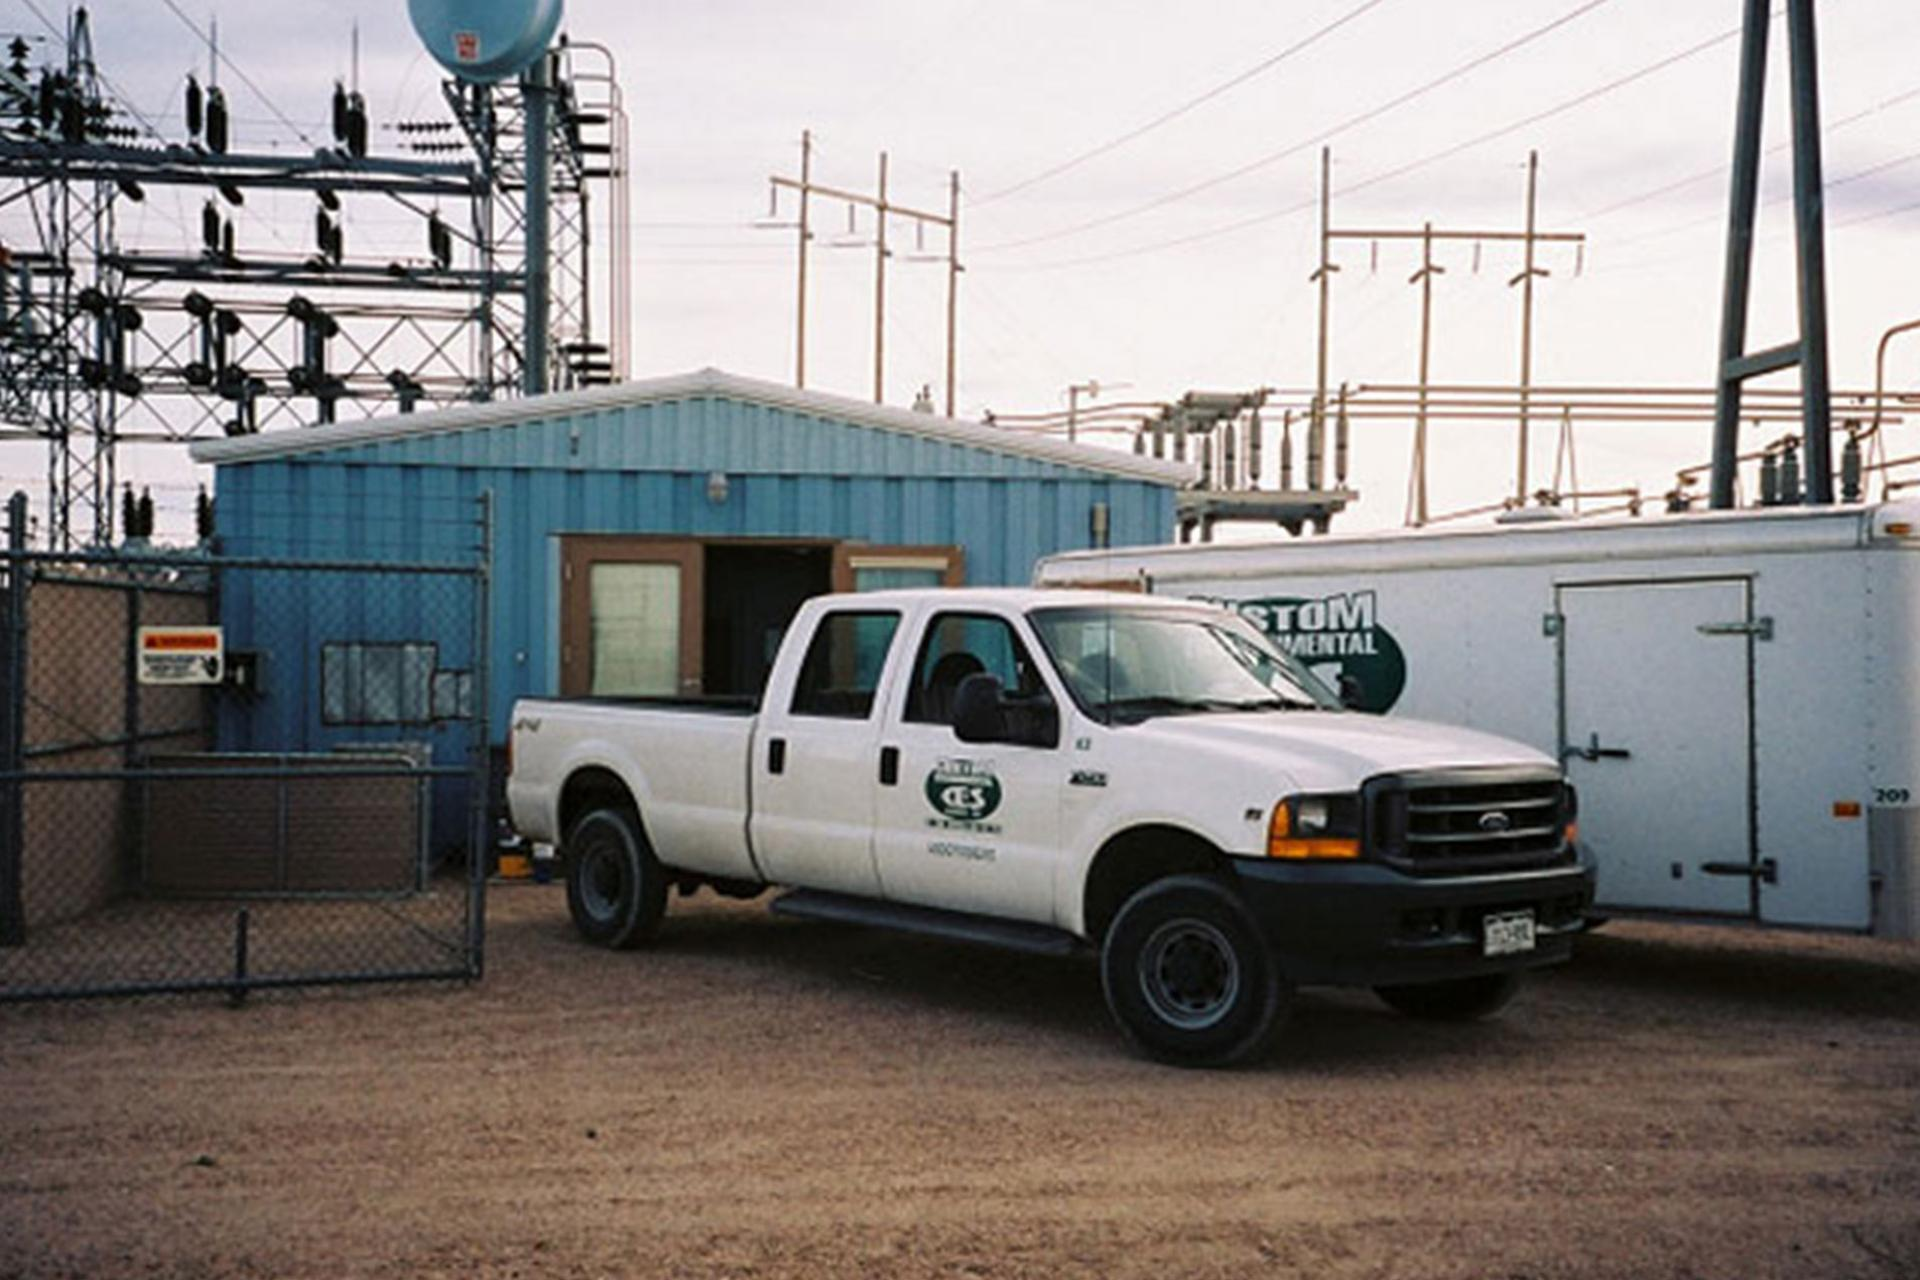 CES Truck outside power plant